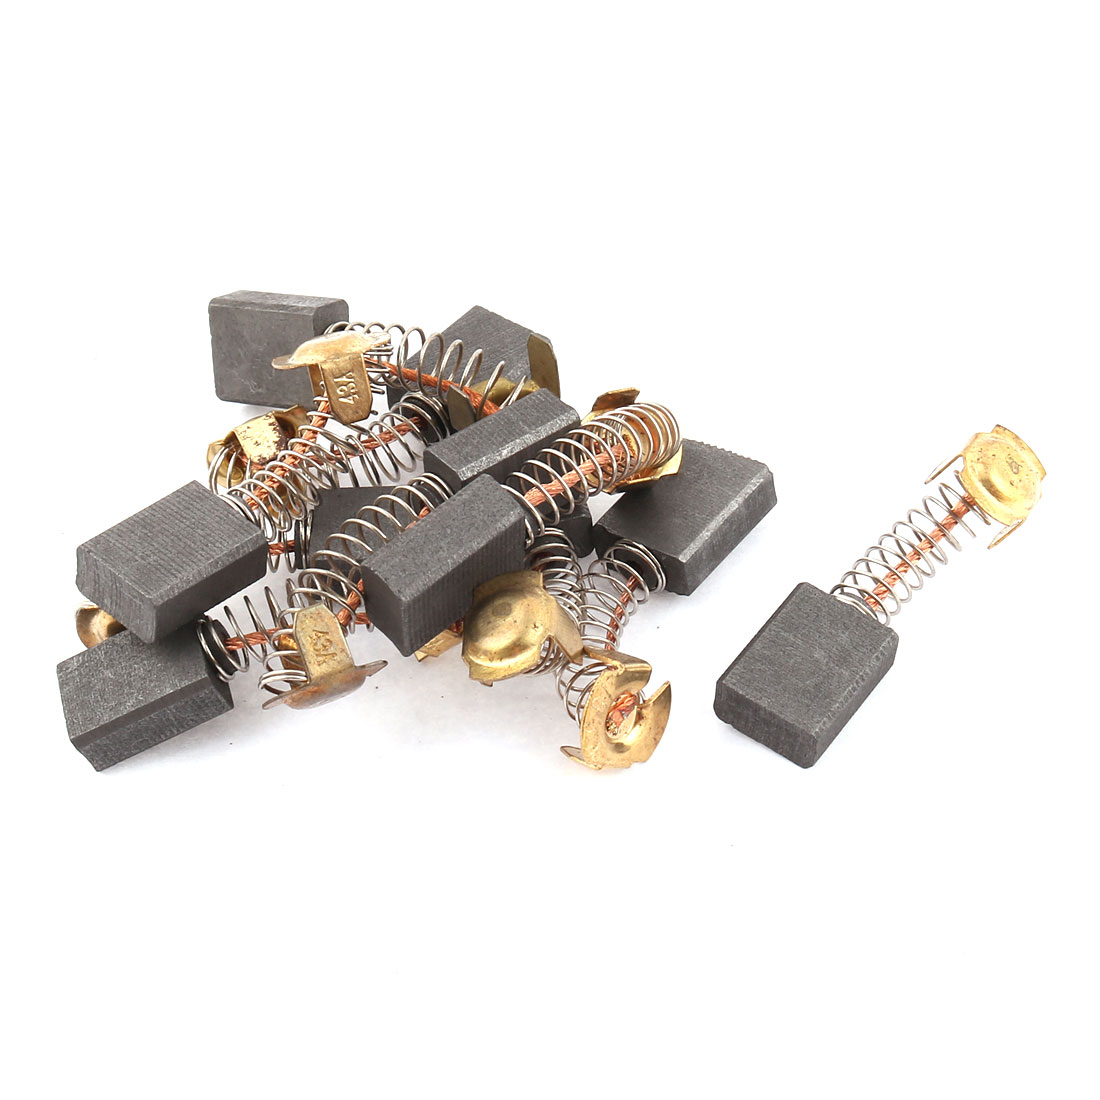 10Pcs Replacement Carbon Brushes 16mm x 13mm x 7mm for Generic Electric Motor